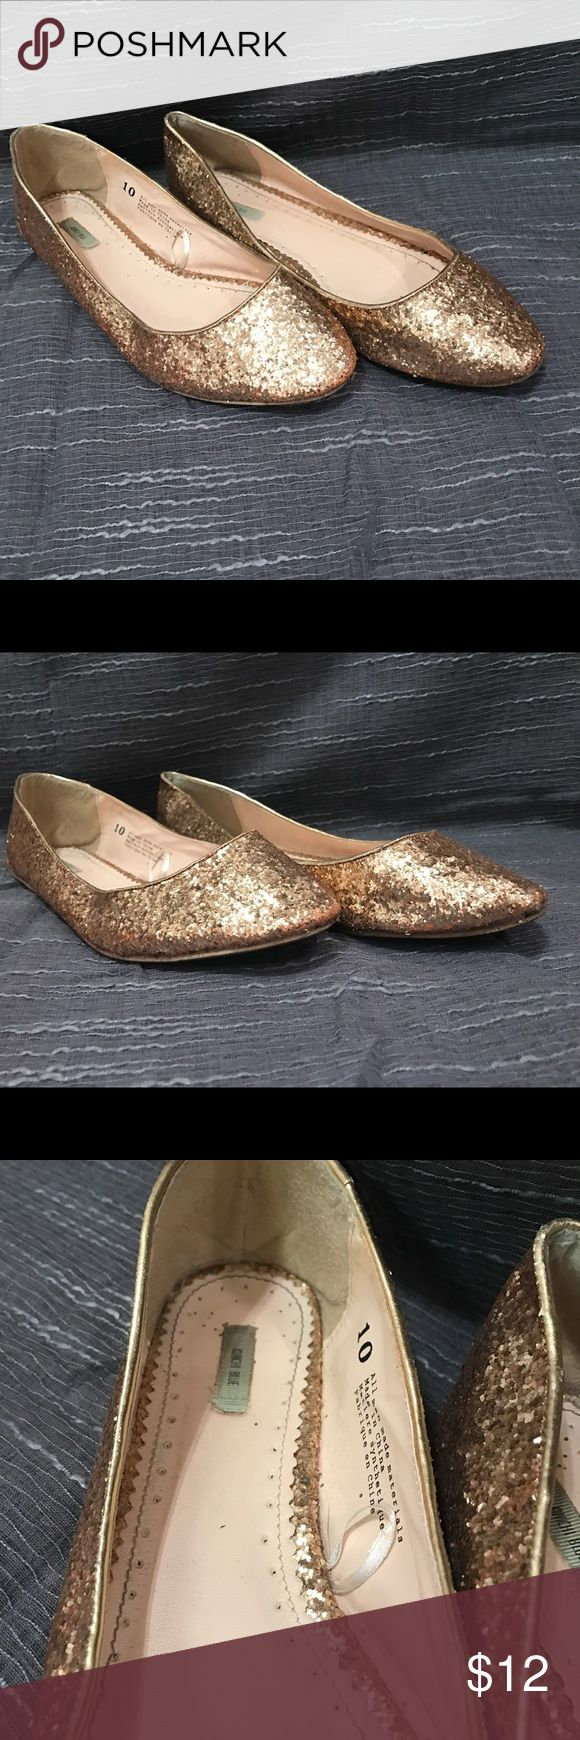 1000+ ideas about Gold Flats Outfit on Pinterest